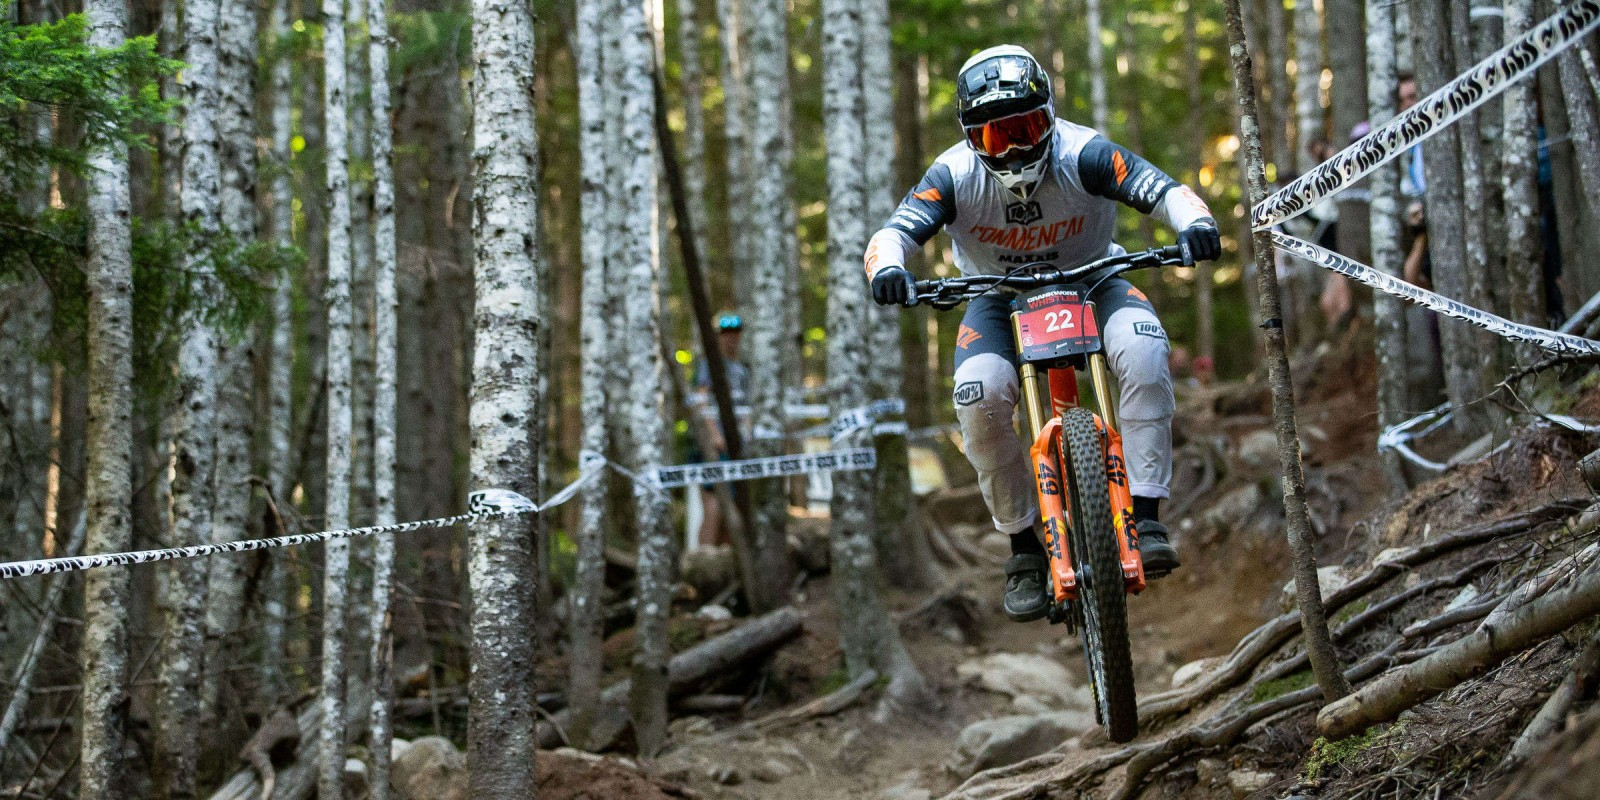 Images from the Crankworx Whistler Canadian Open DH race